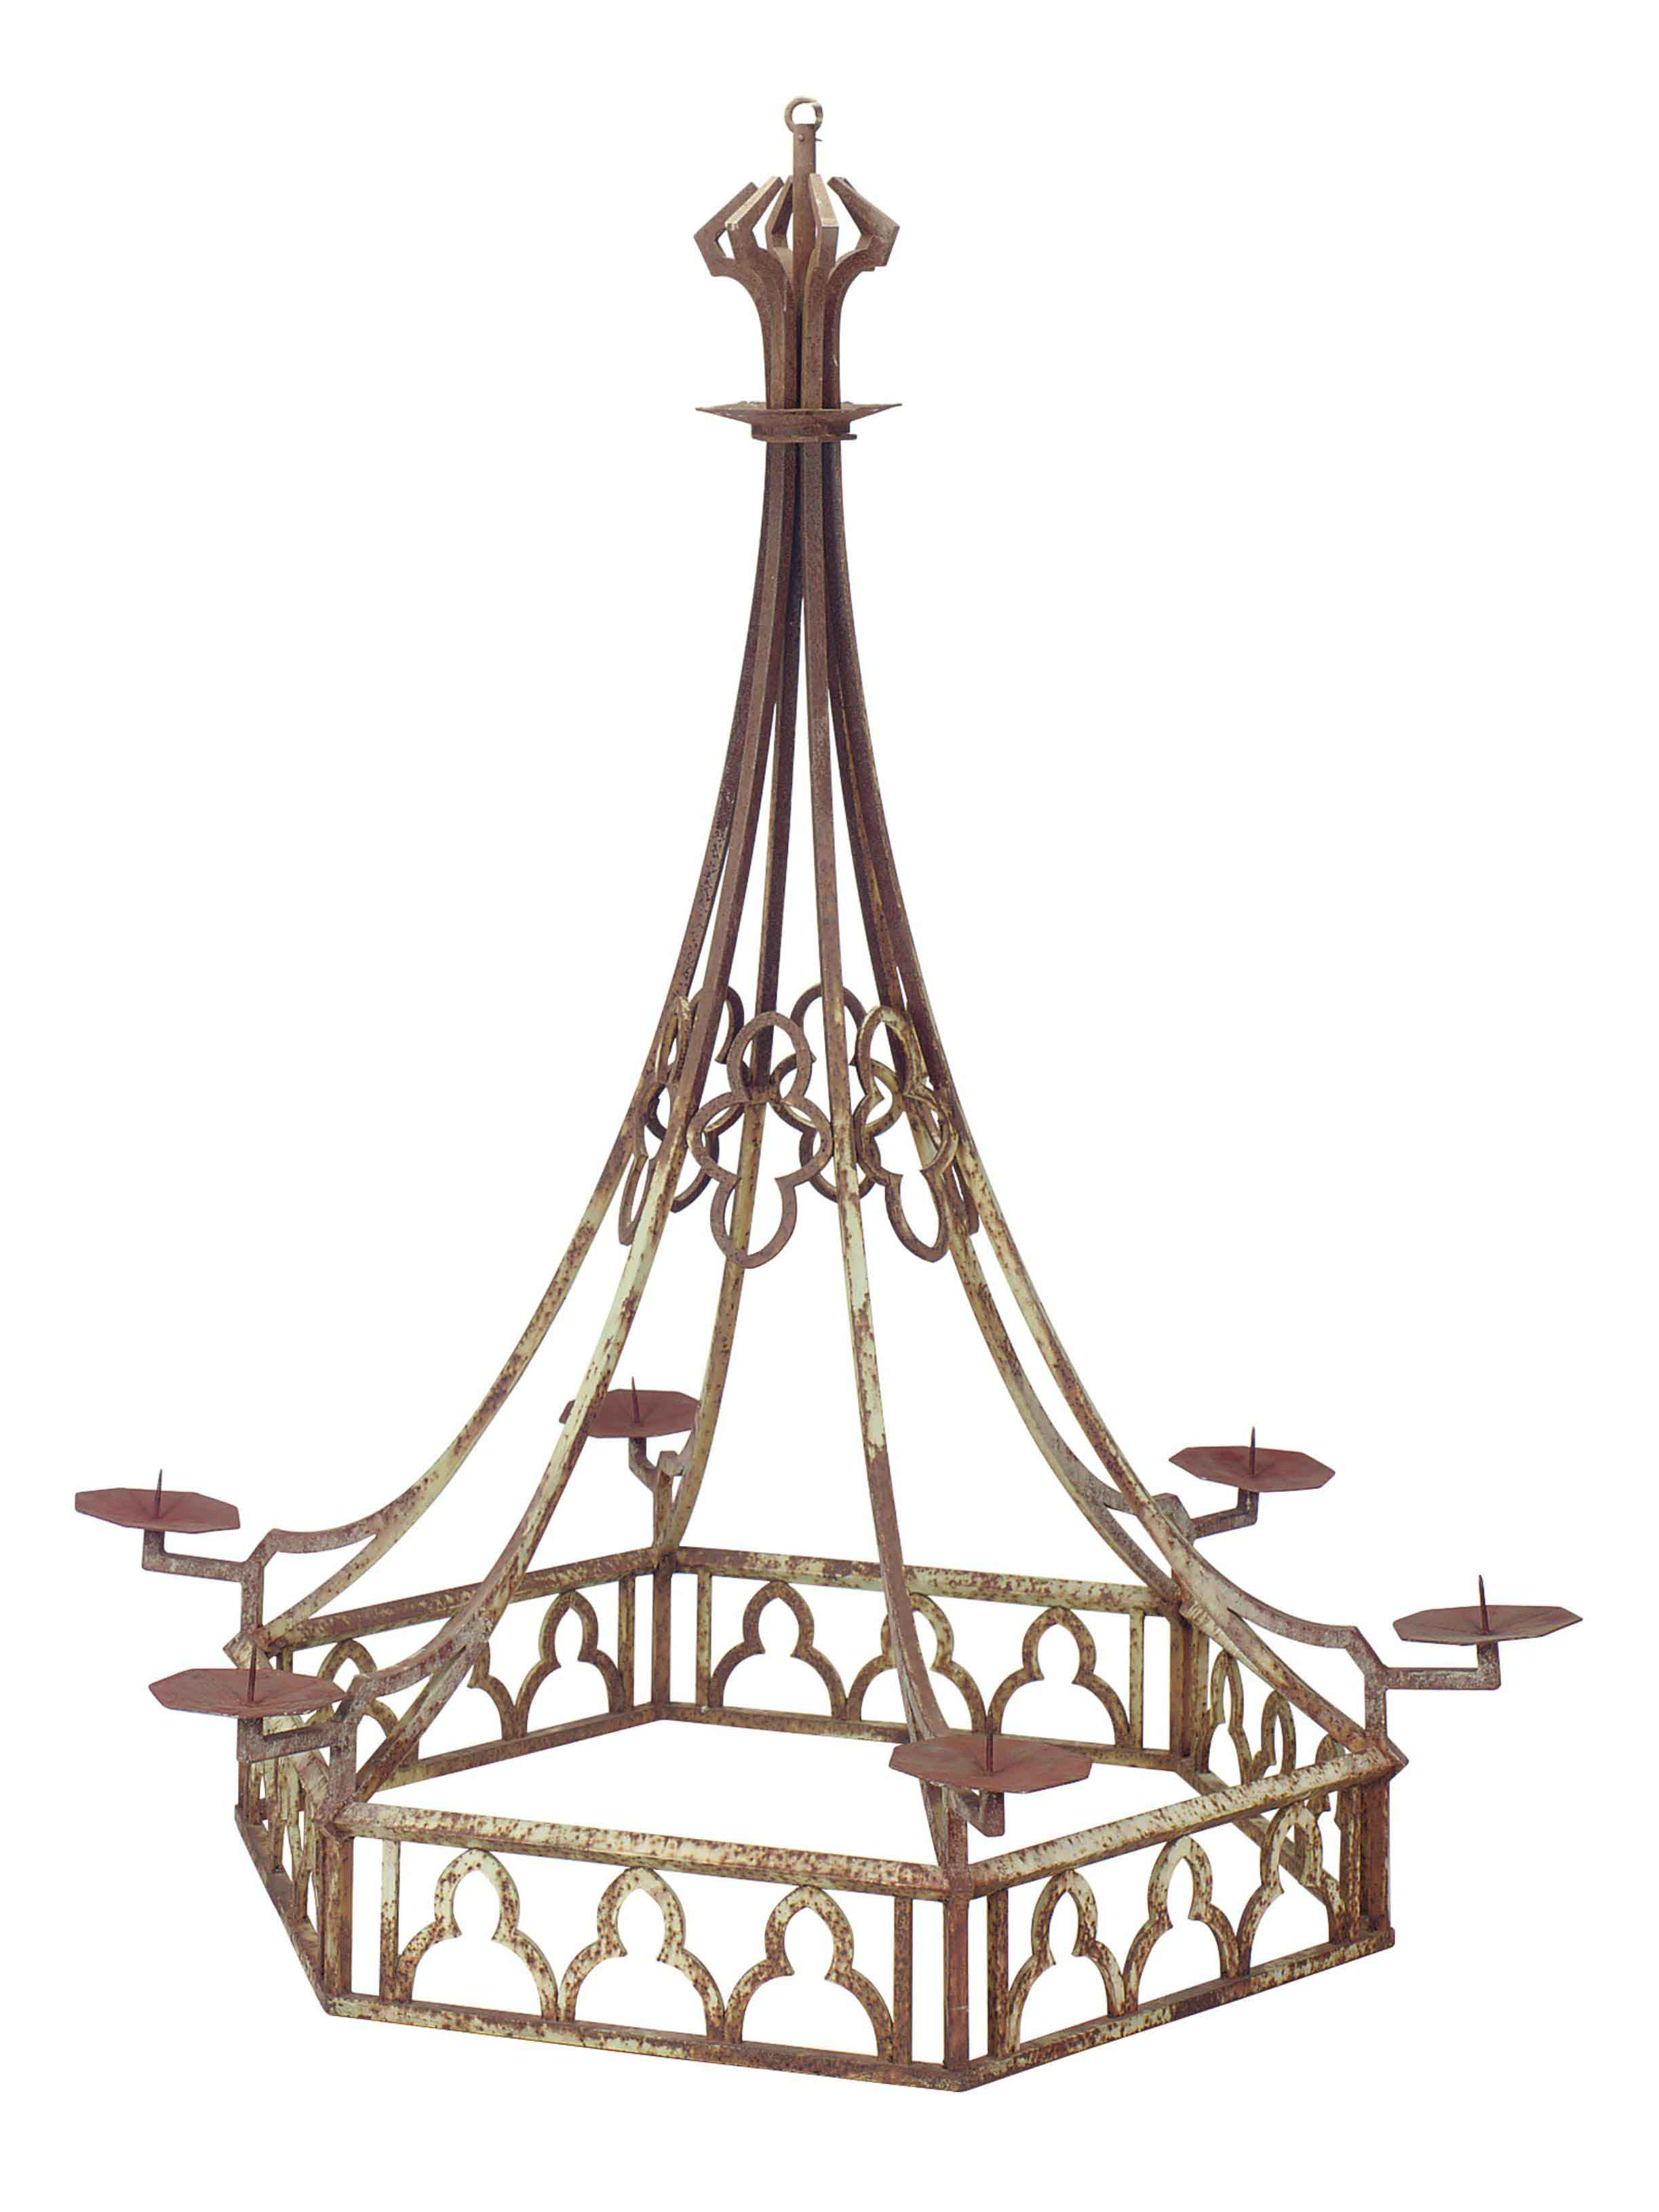 A MONUMENTAL FRENCH PAINTED WROUGHT IRON SIX-LIGHT CHANDELIER,